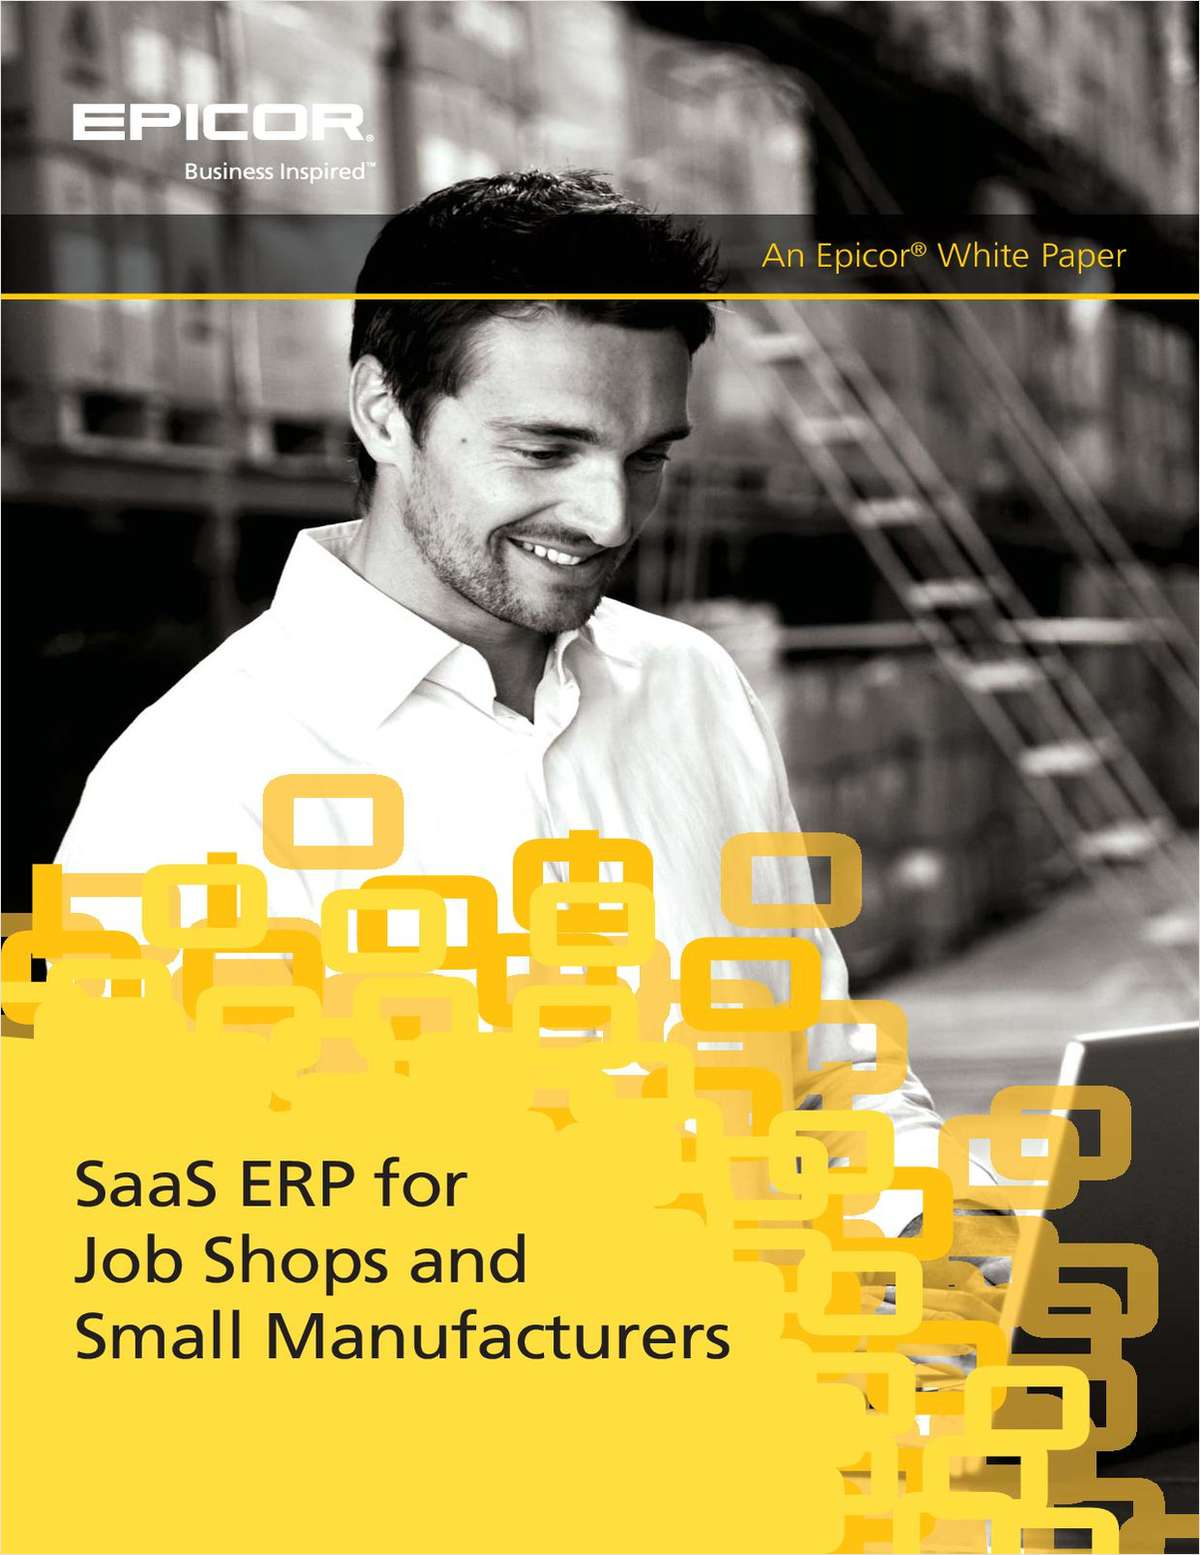 SaaS ERP for Job Shops and Small Manufacturers